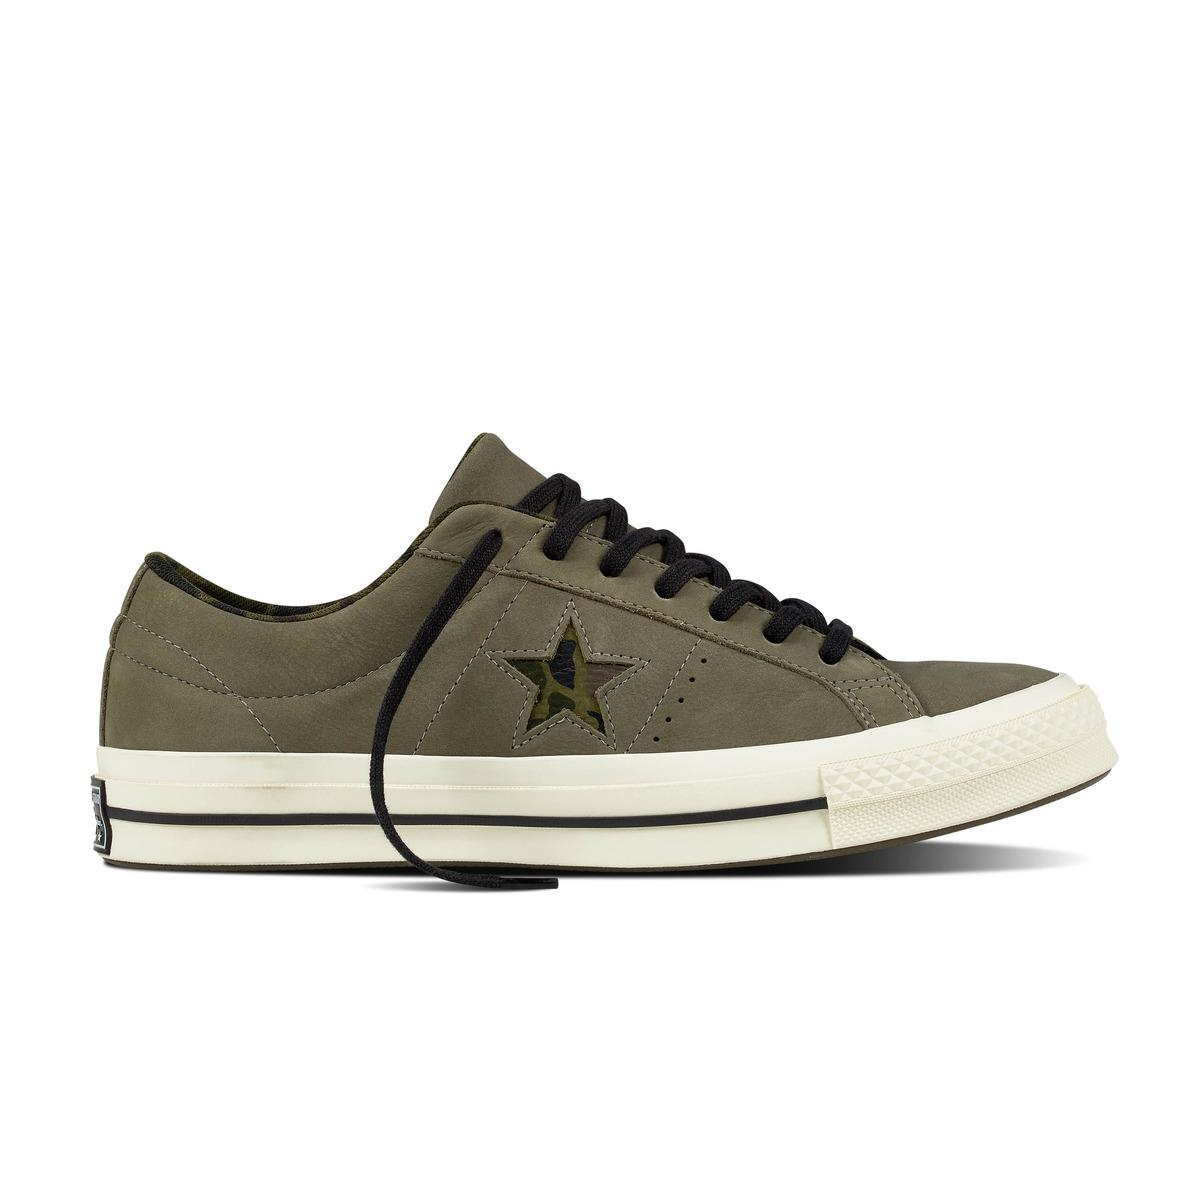 Chaussures Converse CTAS blanches Casual unisexe VrcEp